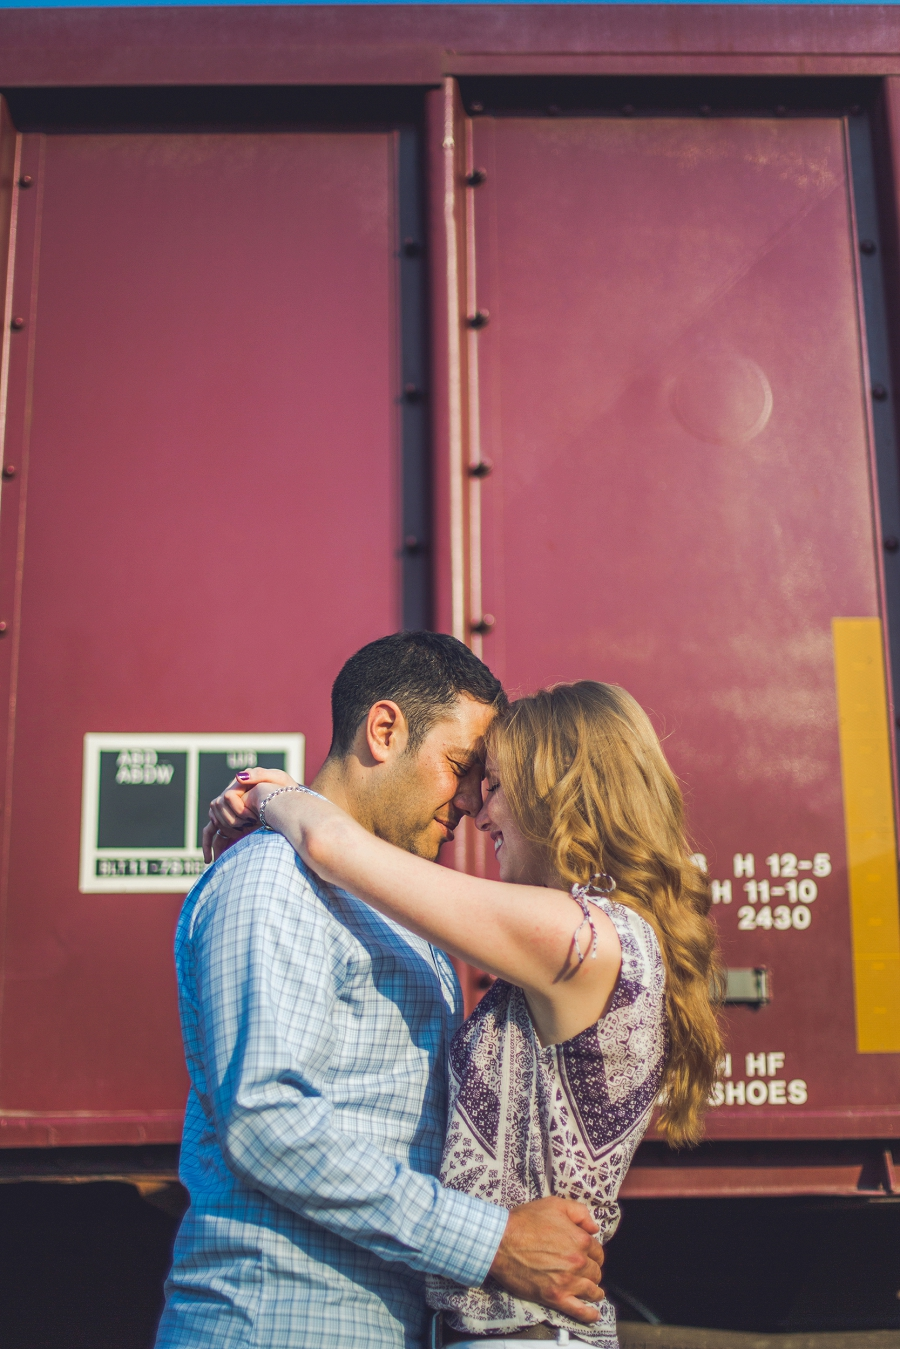 trainyard sunset ramsay calgary engagement photos anna michalska wedding summer